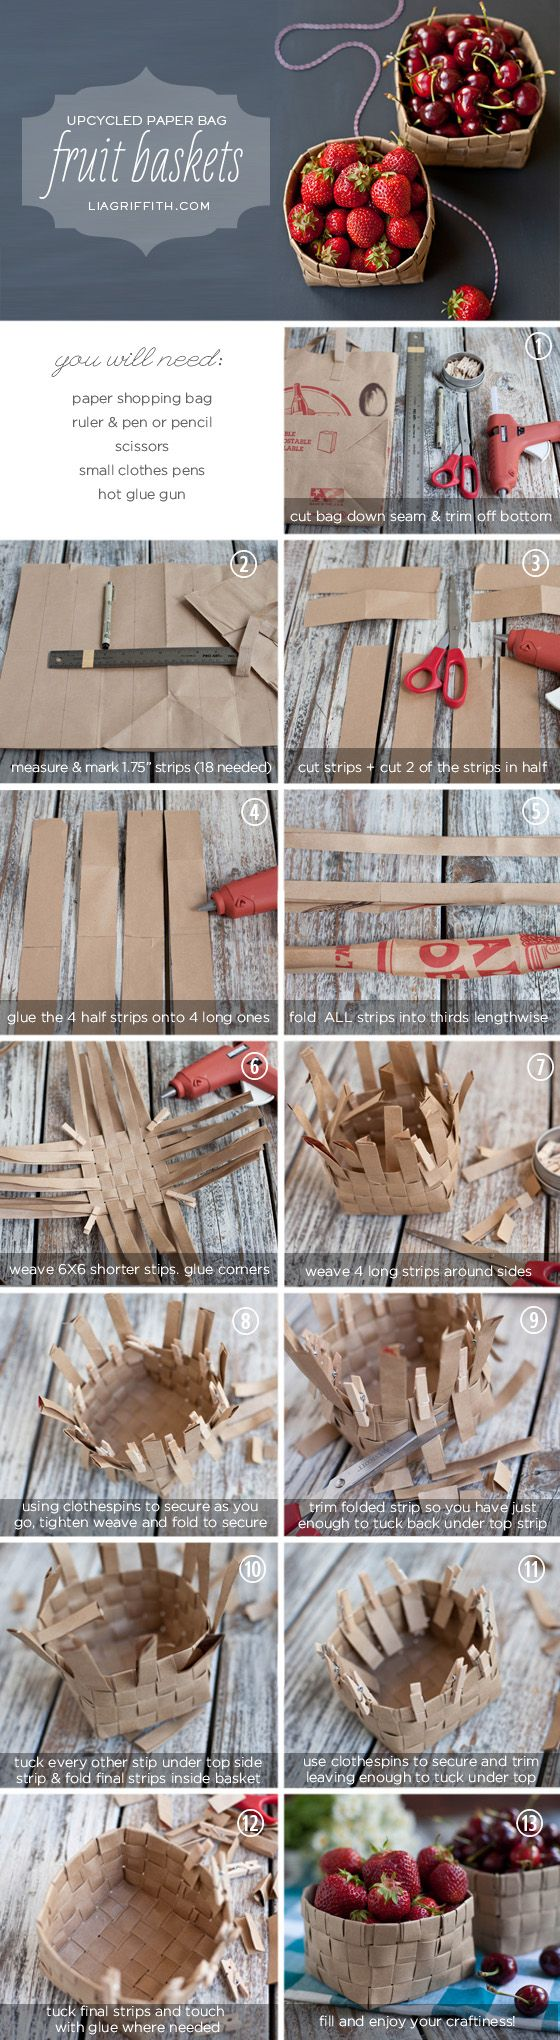 Fruit Basket -- great craft project for kids. Basic tutorial in basket weaving using paper grocery bags. Most grocery stores are happy to give you bags.